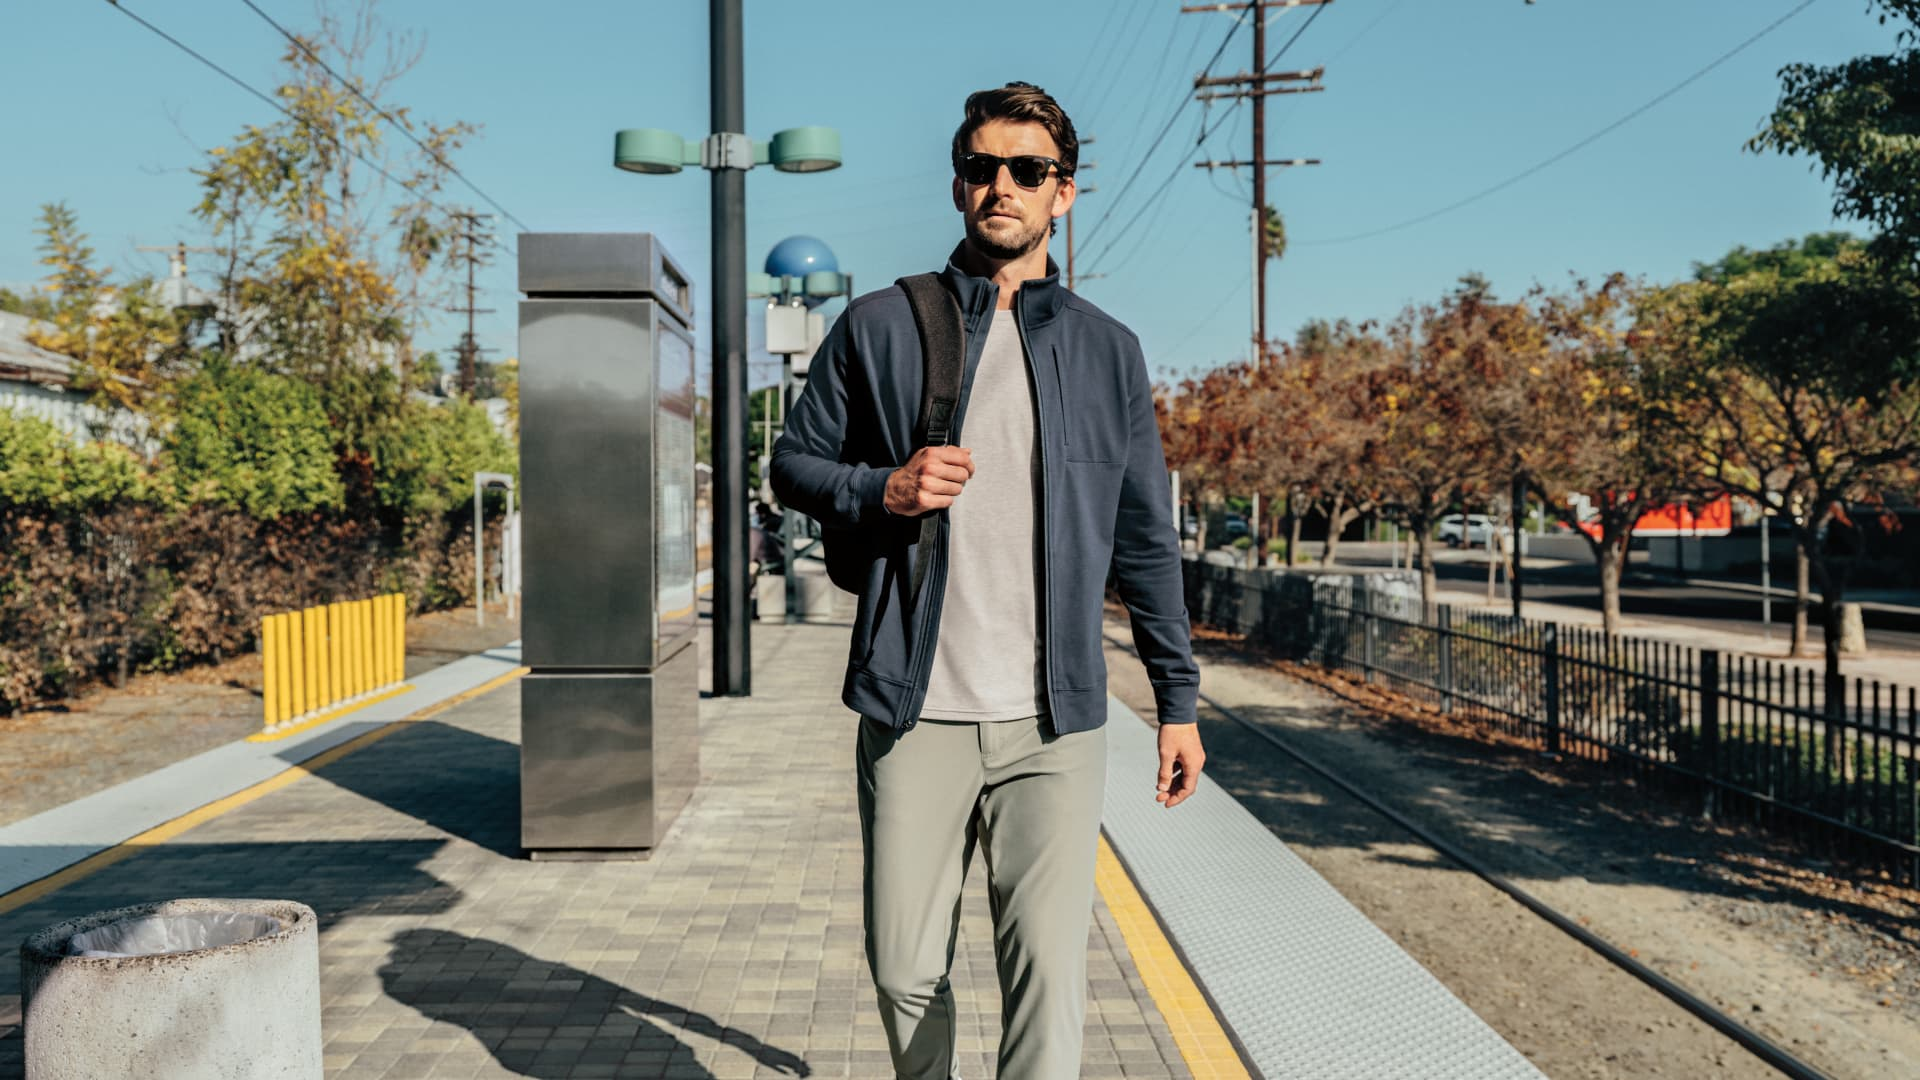 Items in the VRST line, which include everything from joggers, shorts, tees, quarter-zips, and hooded sweatshirts, retail anywhere from $30 to $120, putting it on the higher end of the market when it comes to price point.